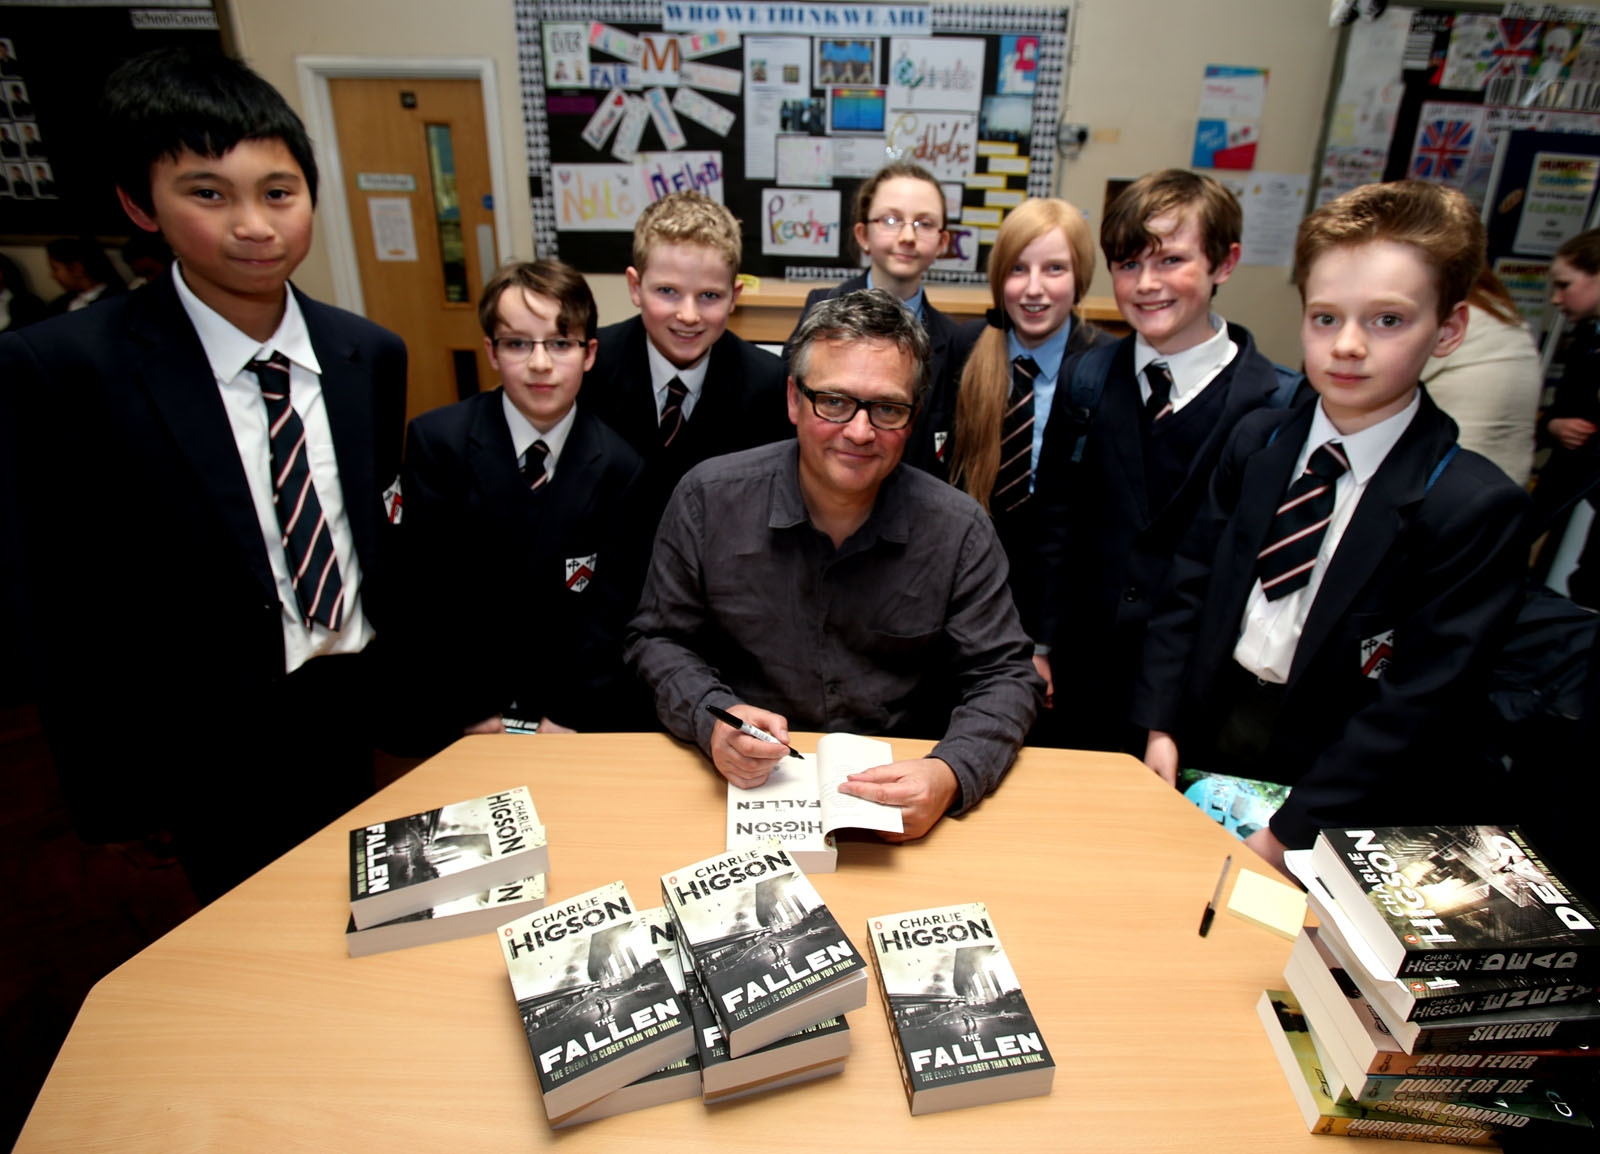 Charlie Higson met with students and signed copies of his books at Tri